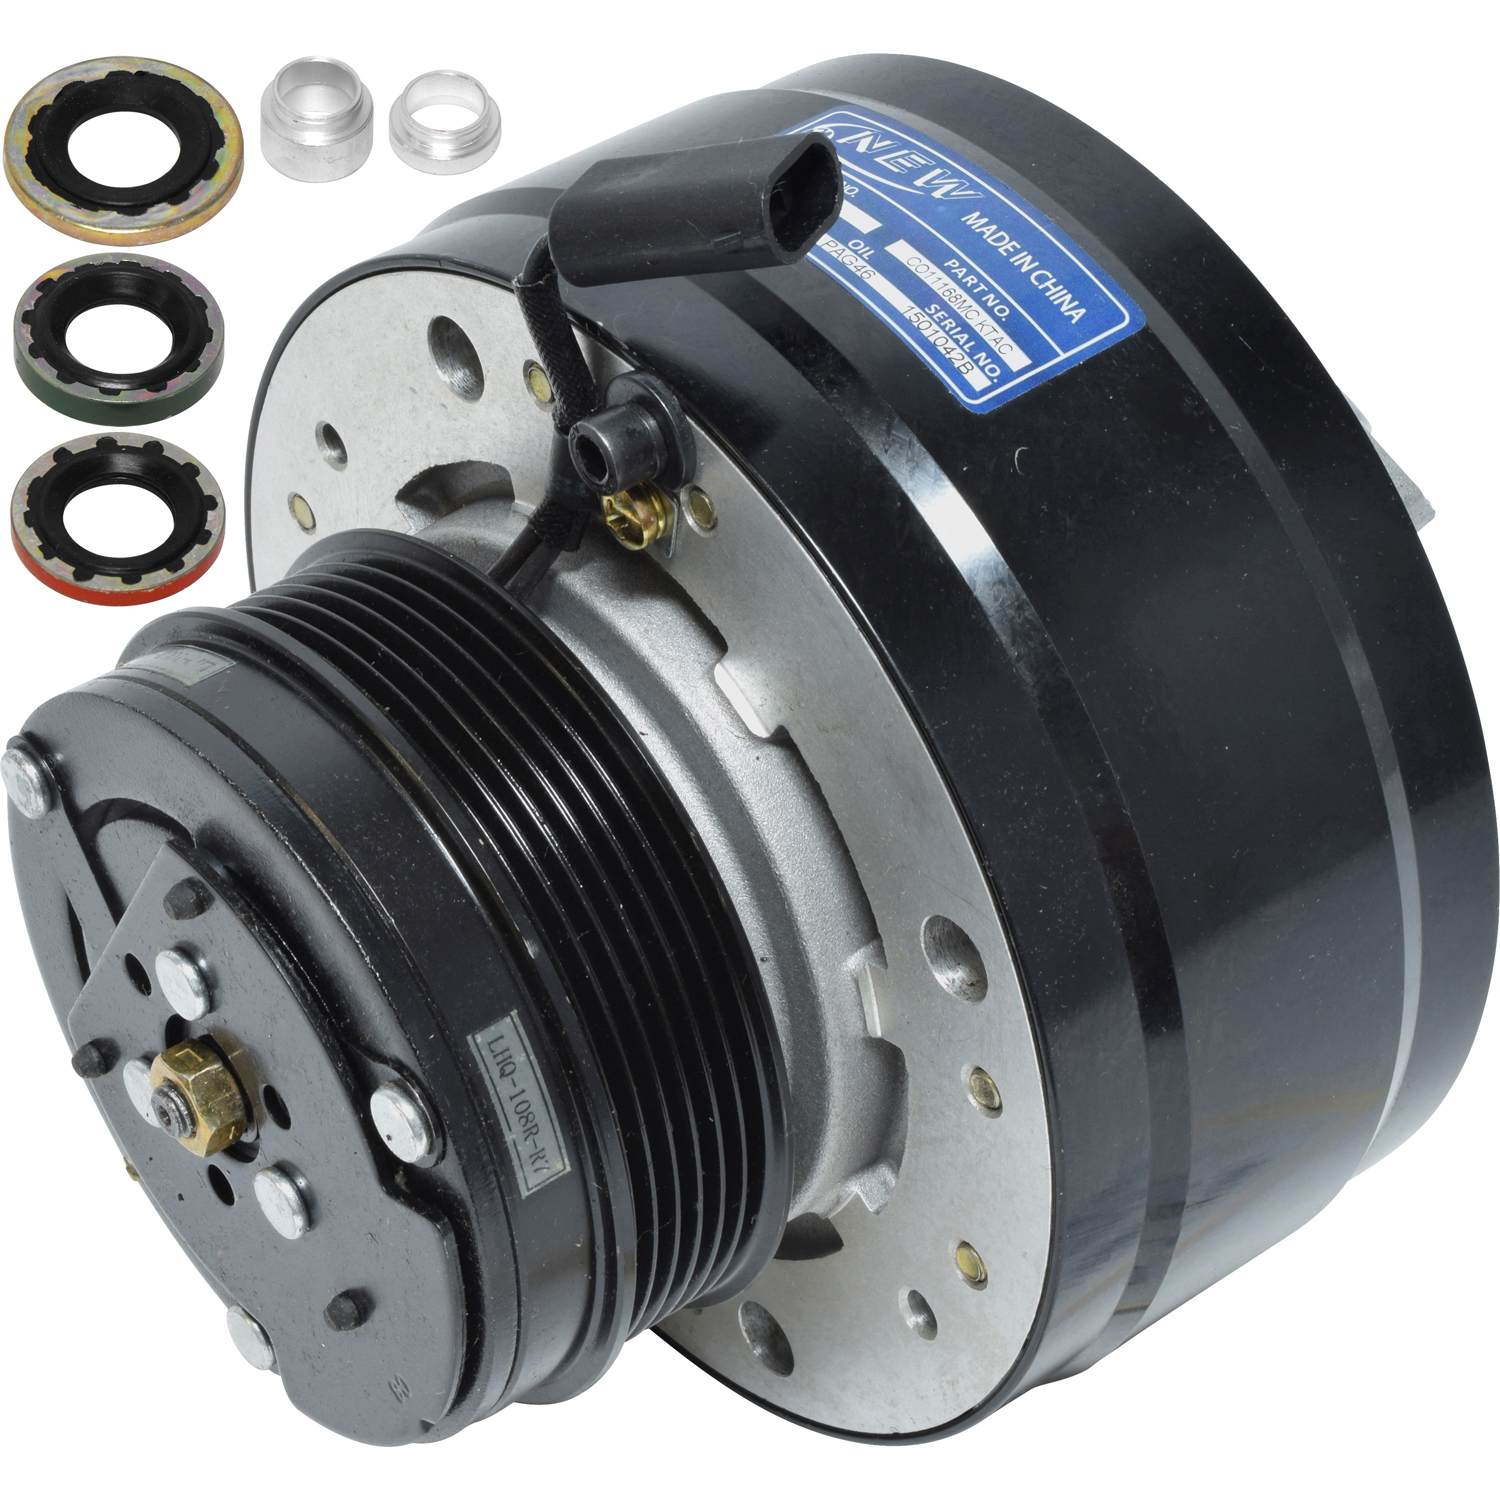 Evrolet c1500 suburban pickup truck ac air conditioning compressor with clutch co 2011168mc ktac